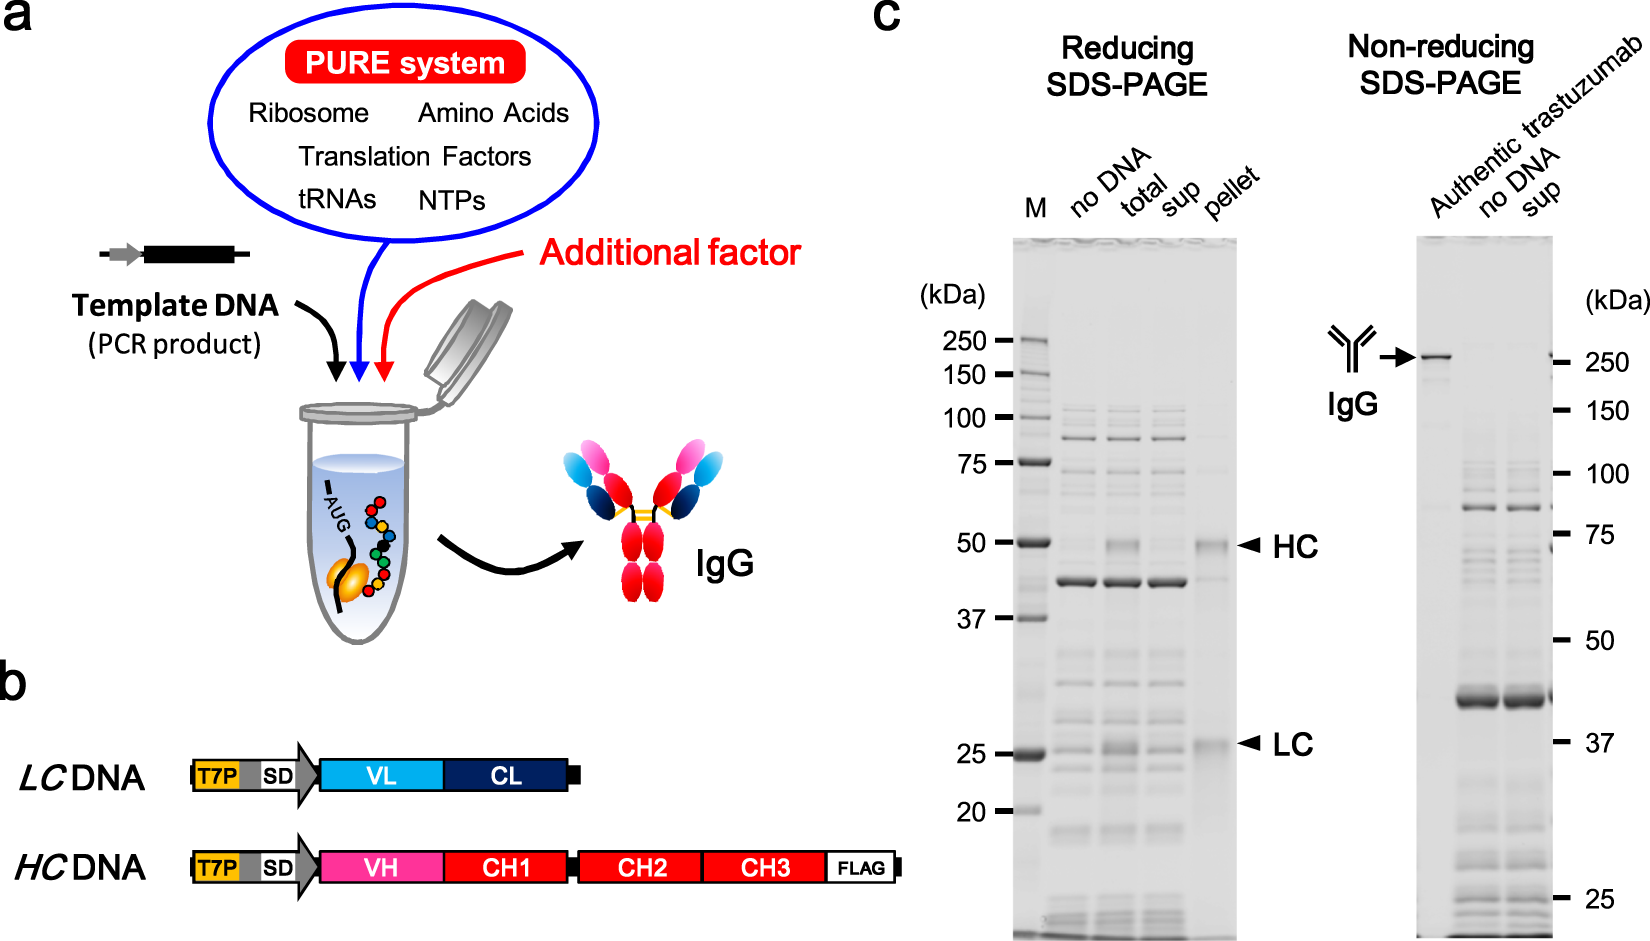 Constructive approach for synthesis of a functional IgG